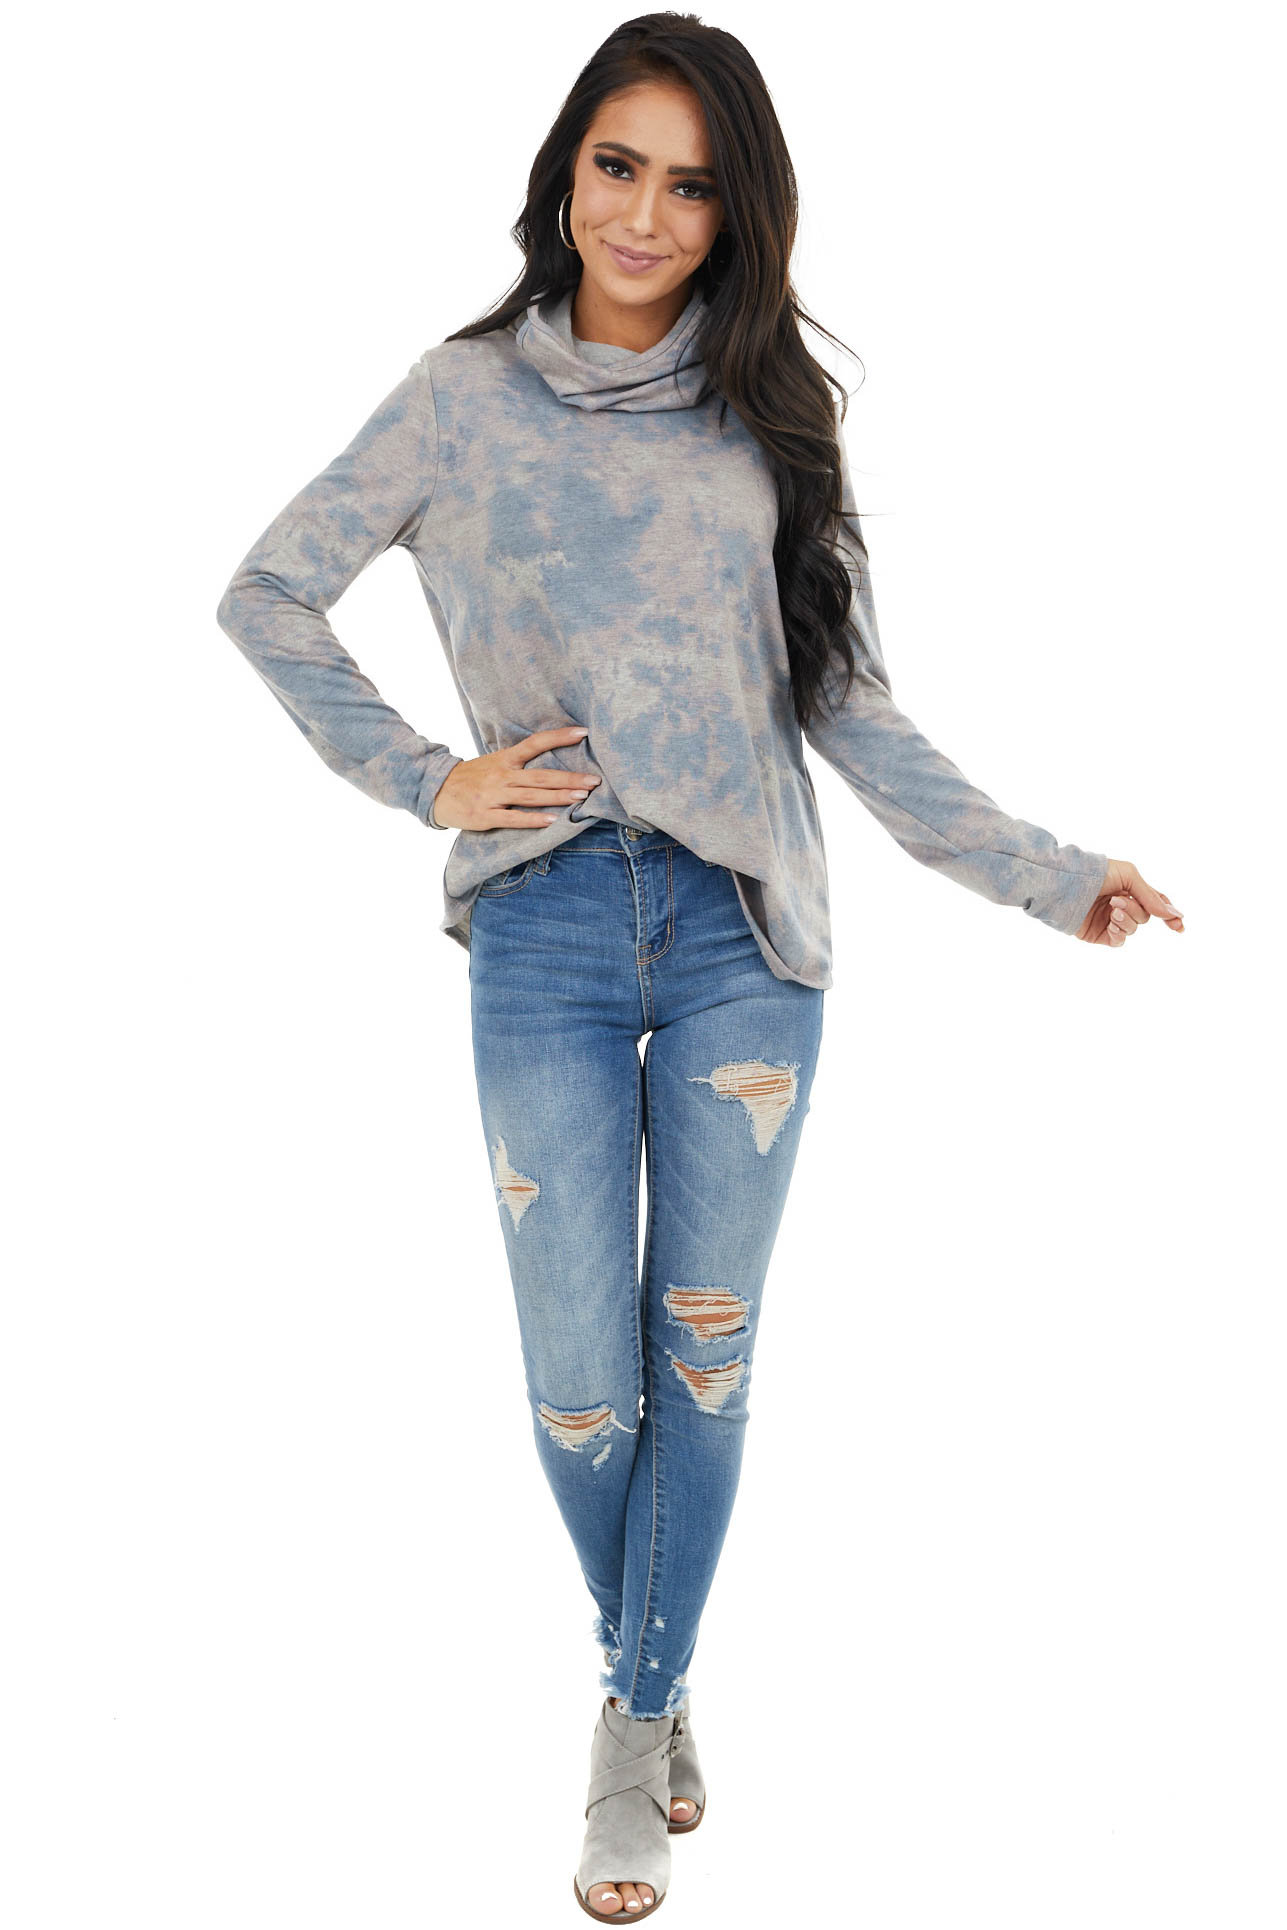 Dusty Rose and Blue Tie Dye Top with Cowl Neck Face Covering